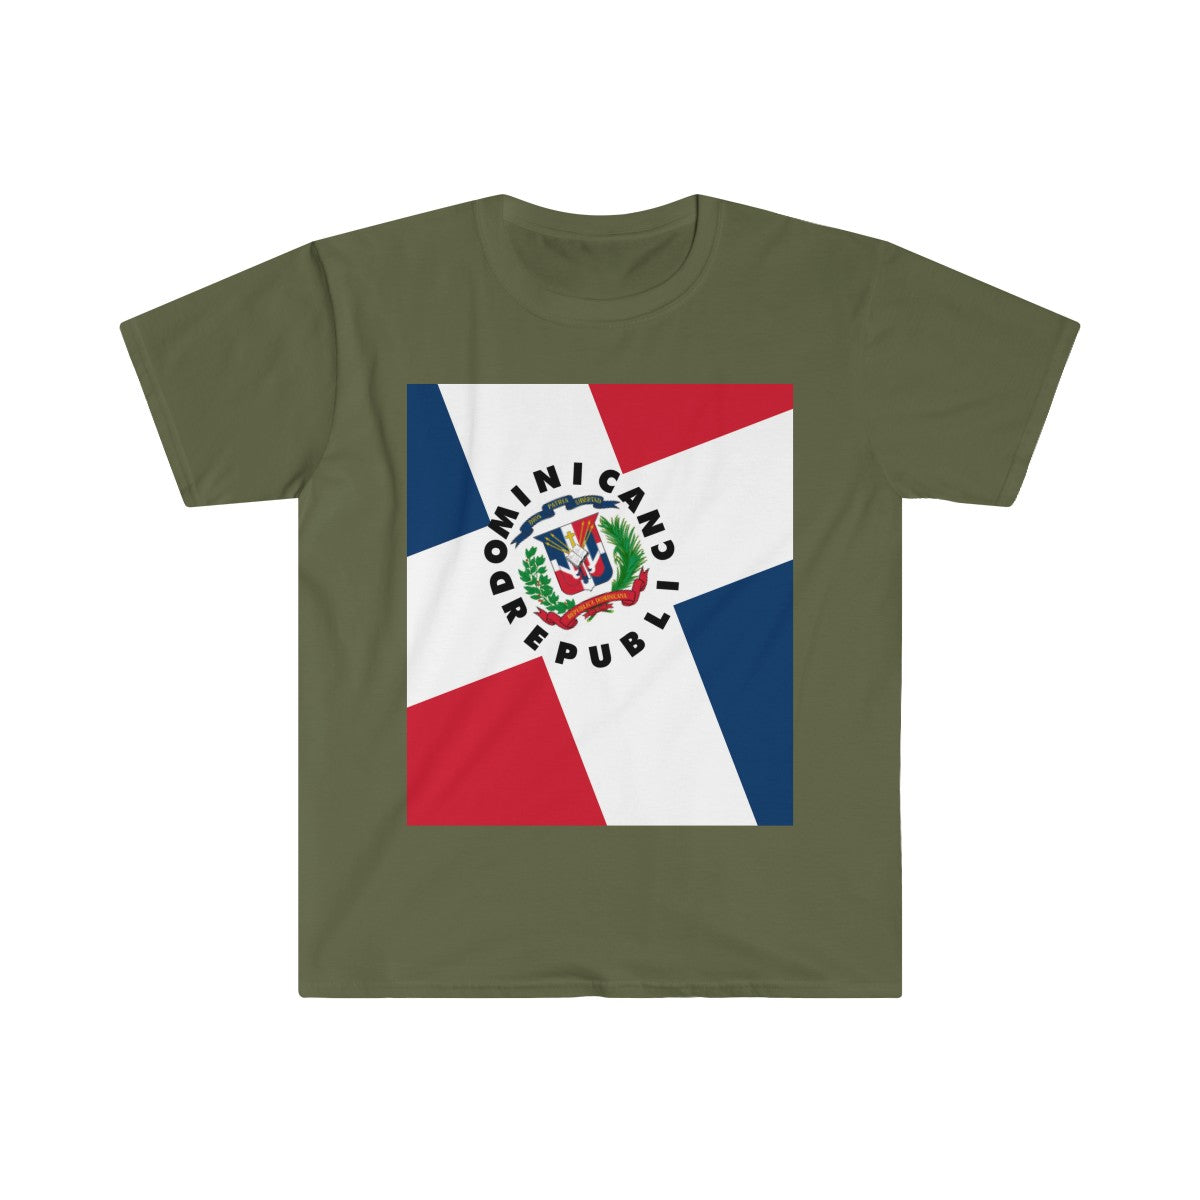 Dominican Republic Men's Fitted Short Sleeve Tee Shirt